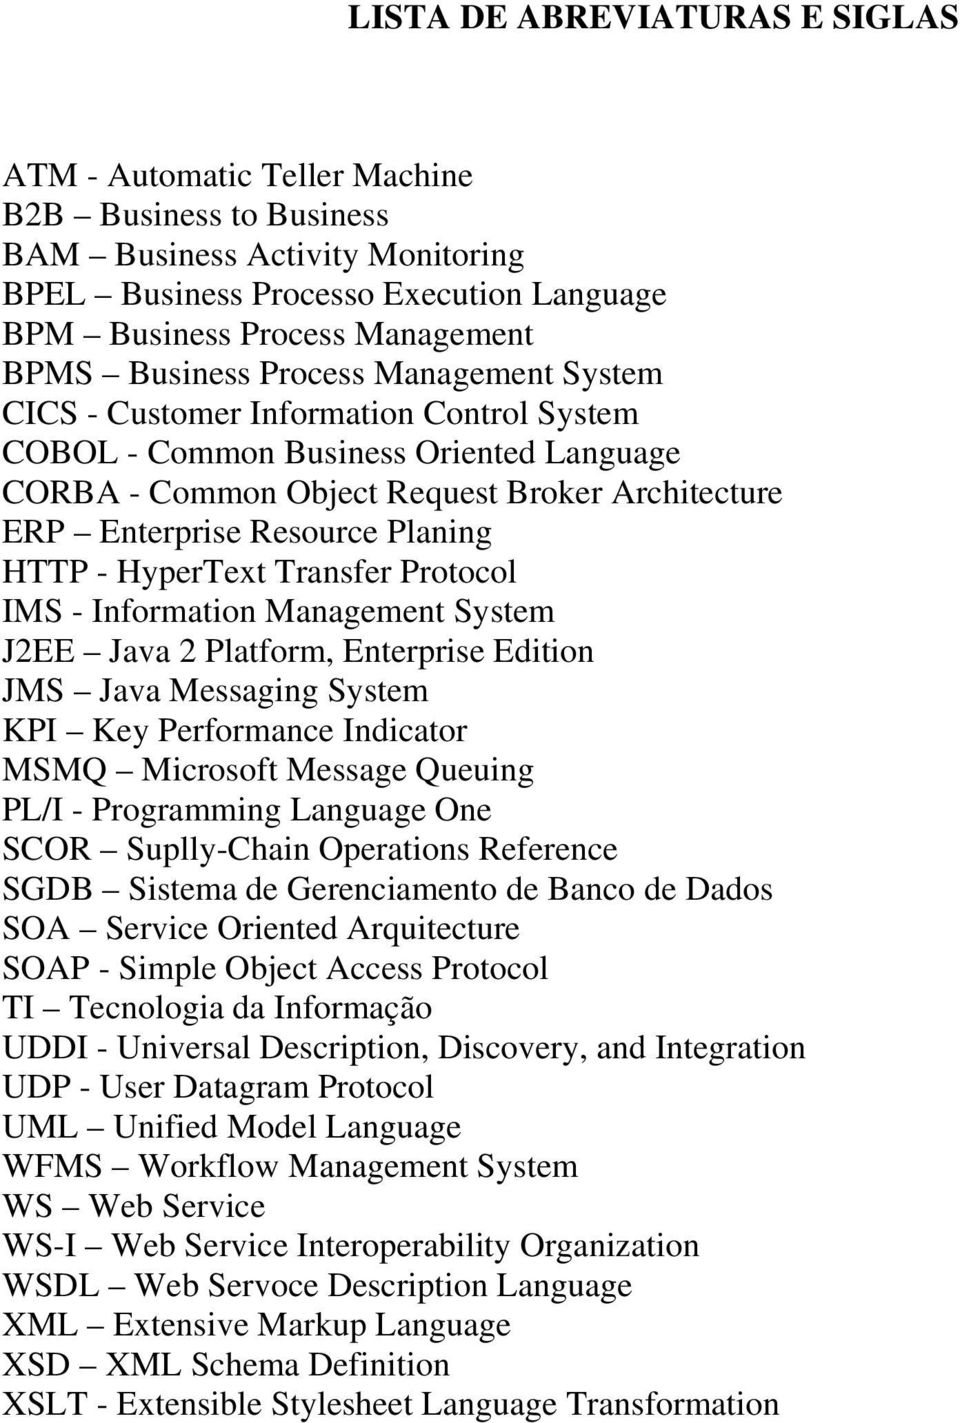 Planing HTTP - HyperText Transfer Protocol IMS - Information Management System J2EE Java 2 Platform, Enterprise Edition JMS Java Messaging System KPI Key Performance Indicator MSMQ Microsoft Message